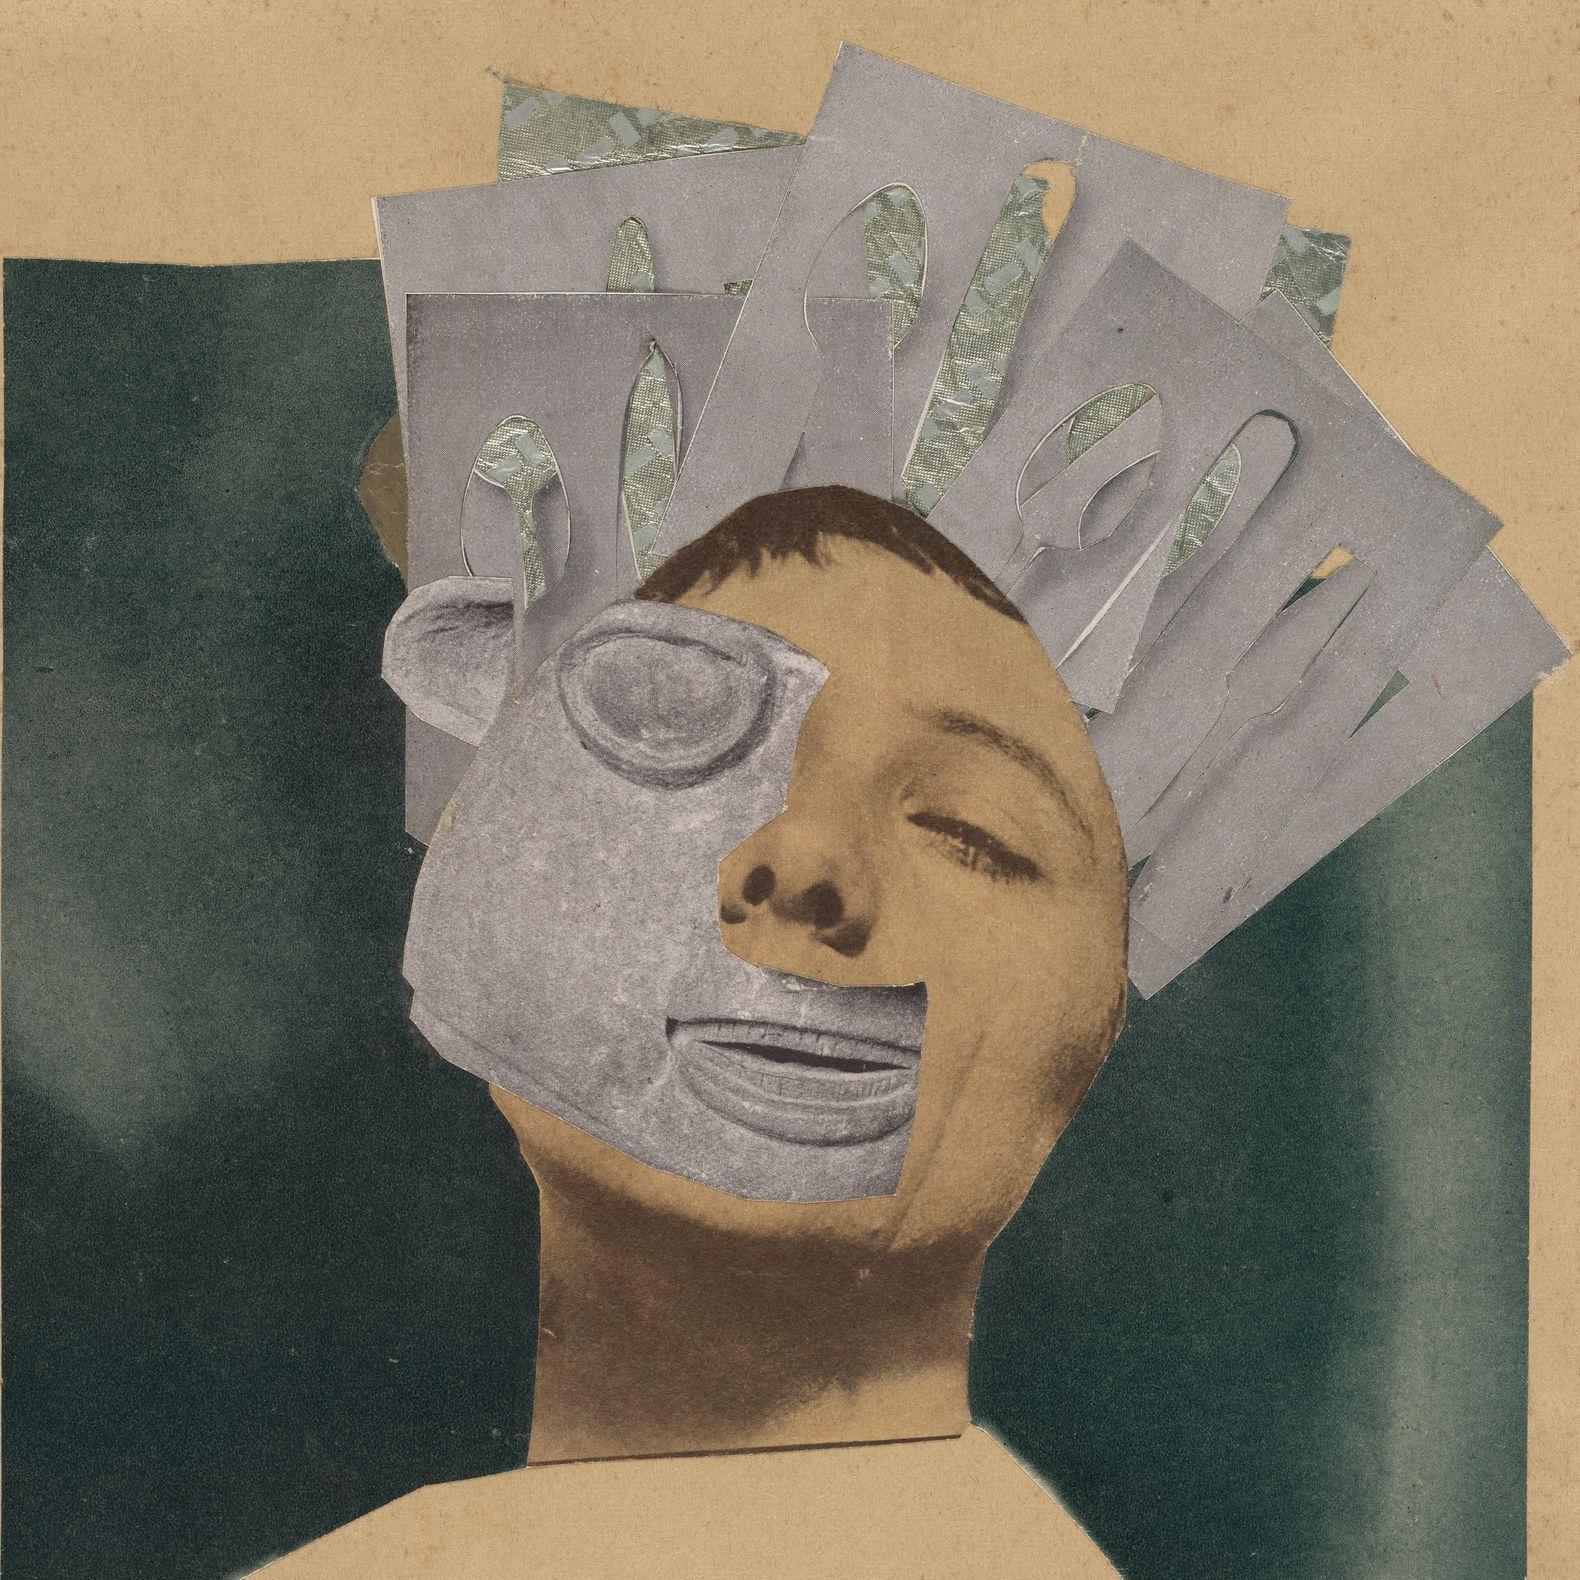 Art Brunch | Cut + Paste Creative Collage | Kassandra Bossell